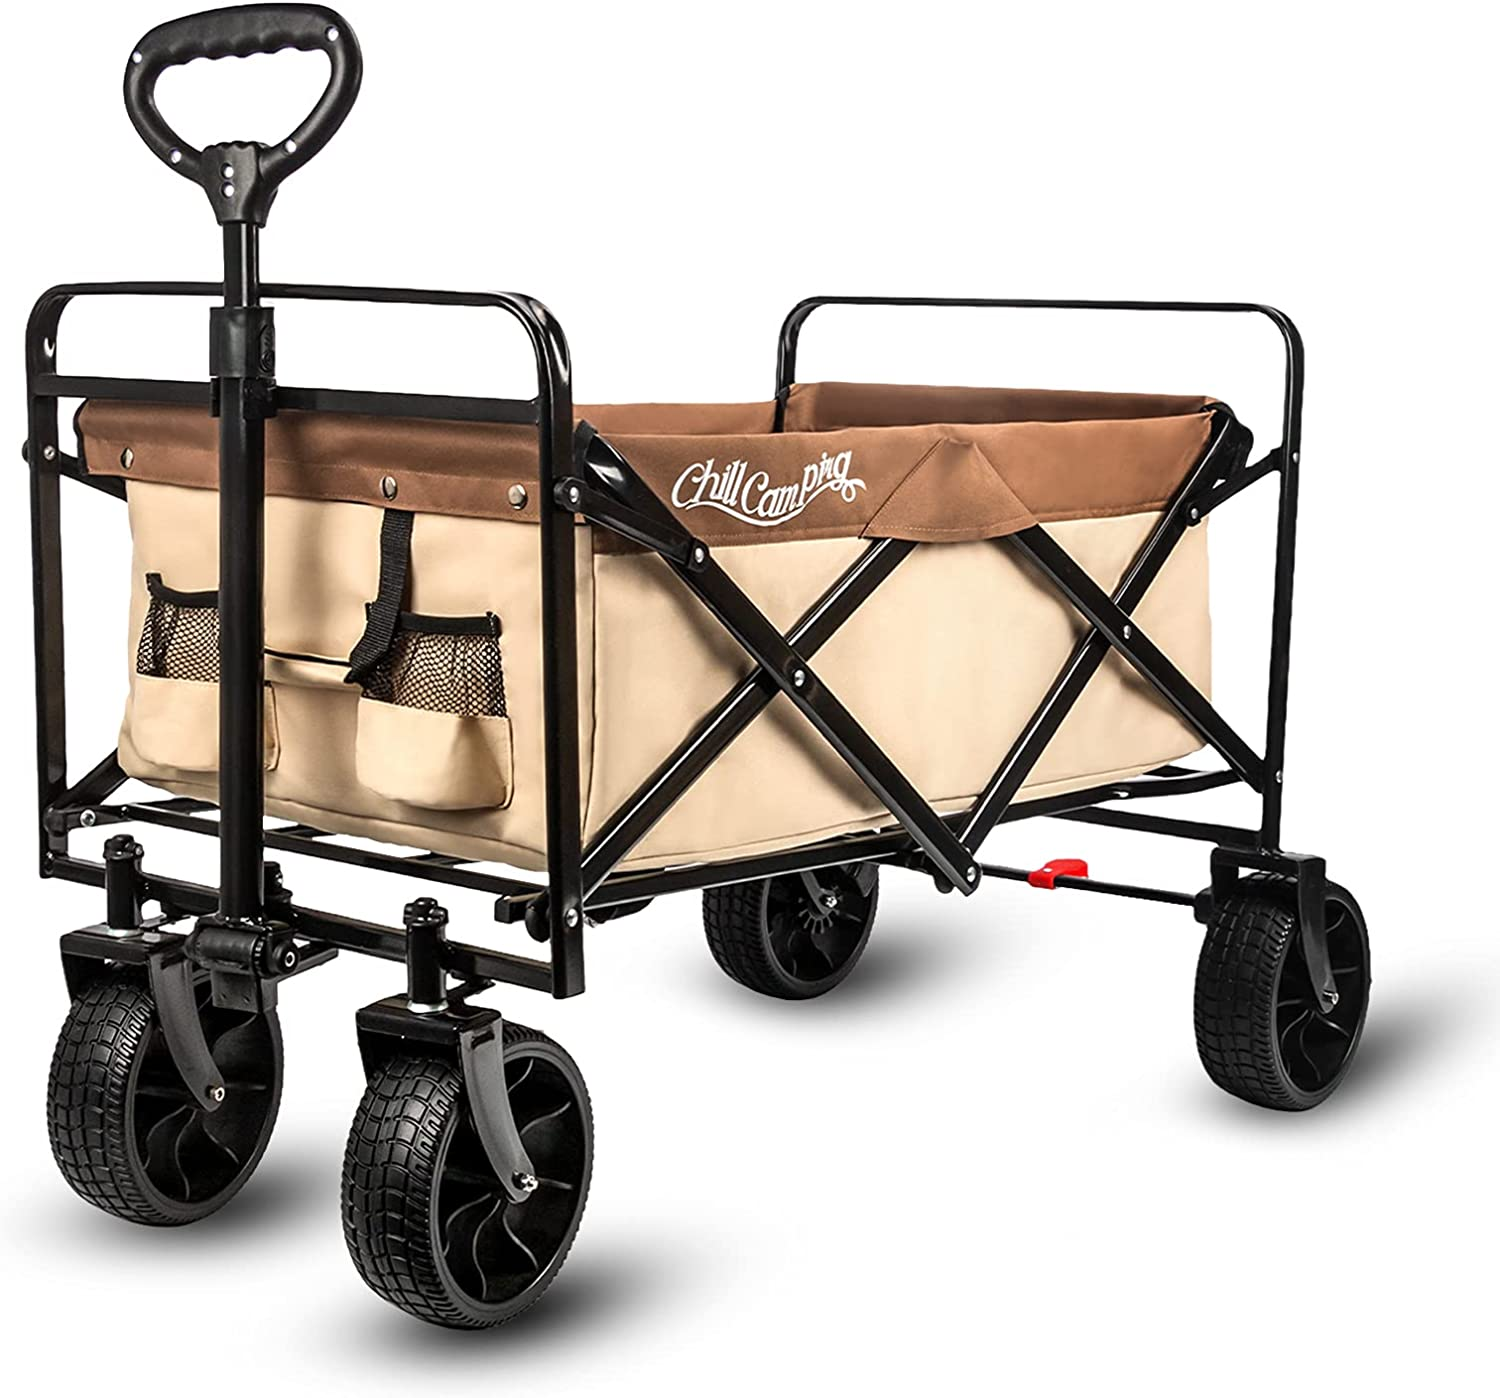 Beach Wagon Cart, Collapsible Folding Wagon with Big Rubber Wheels, Adjustable Handles and Brake, Heavy Duty Utility Wagon All Terrain Outdoor Camping Garden Grocery Wagon, Neutral : Patio, Lawn & Garden